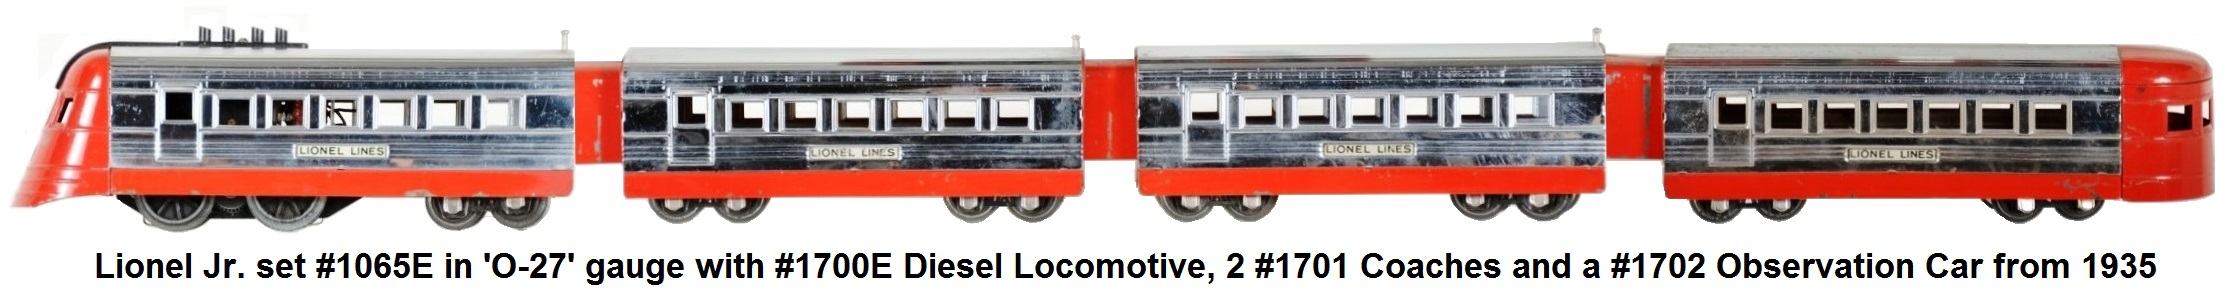 Lionel 'O-27' gauge #1065 streamliner set from 1935